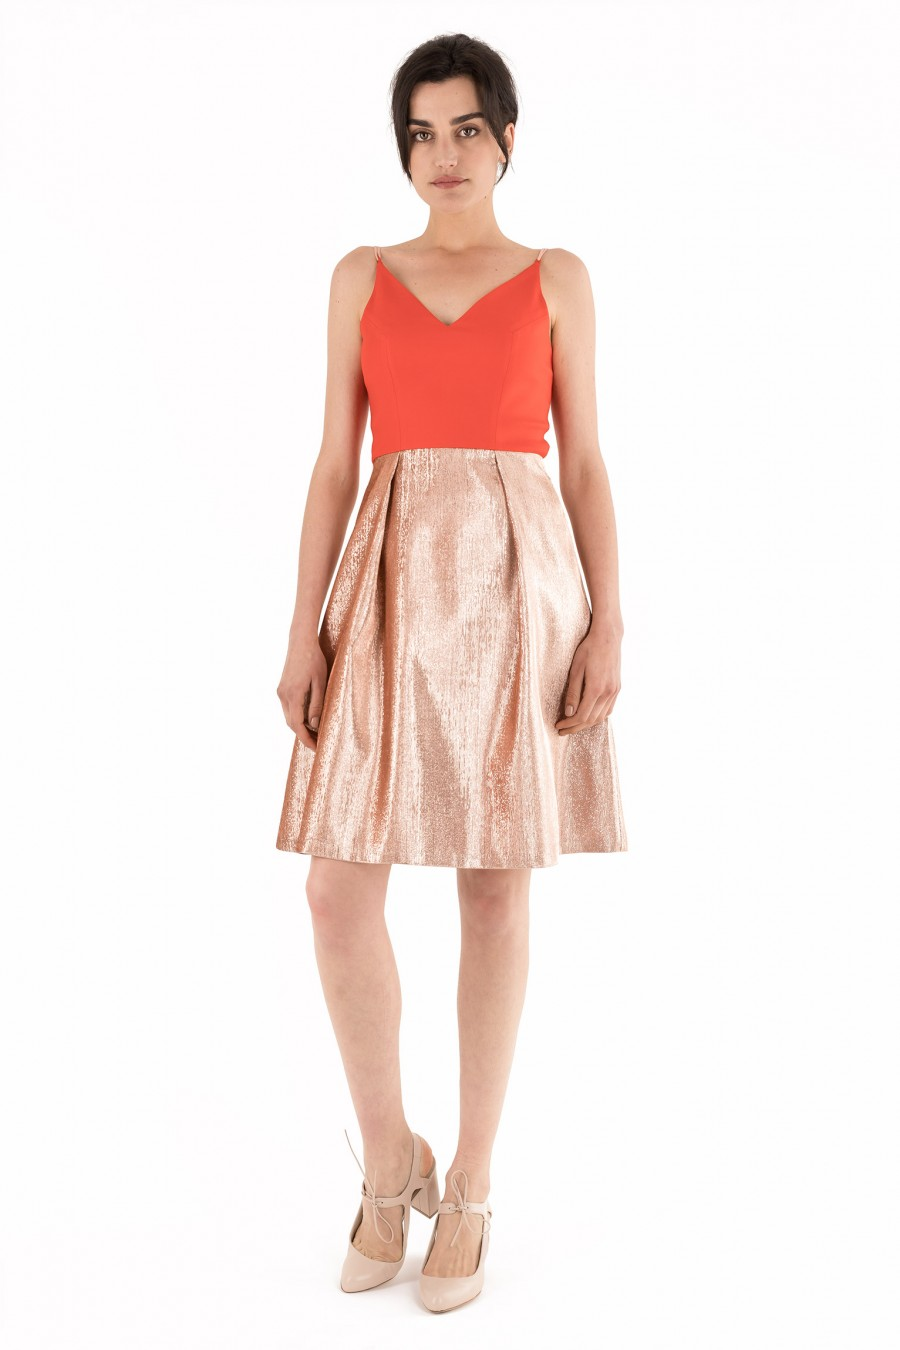 Dress with red top and golden skirt